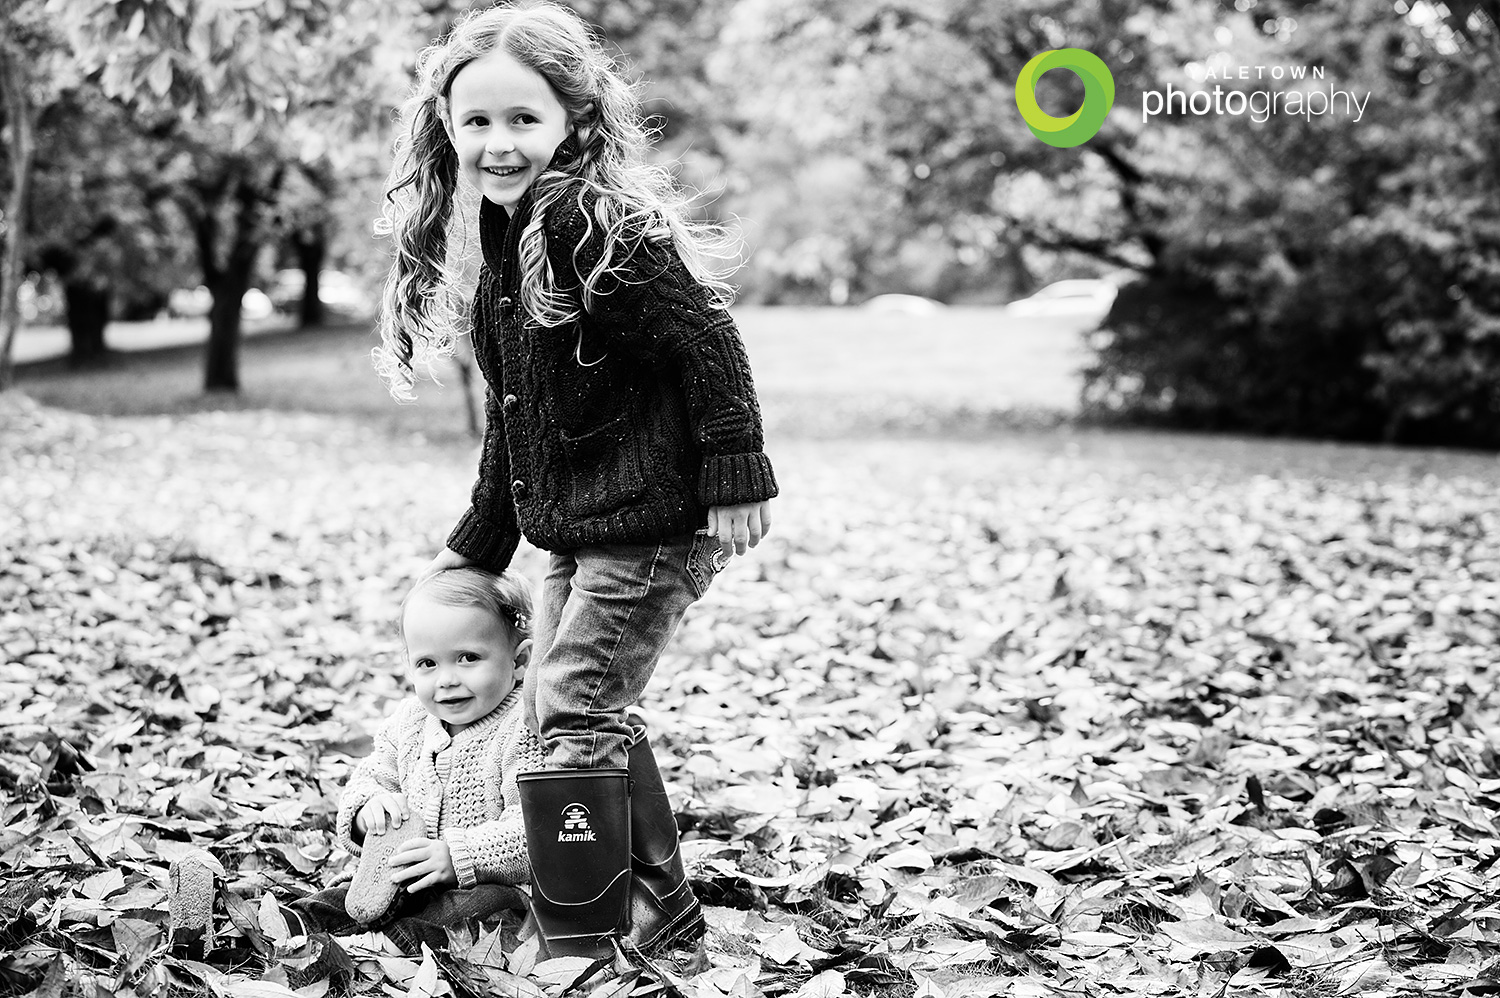 kids-photography-fall-leaves-vancouver-family-photography-yaletown-photography-photo.jpg